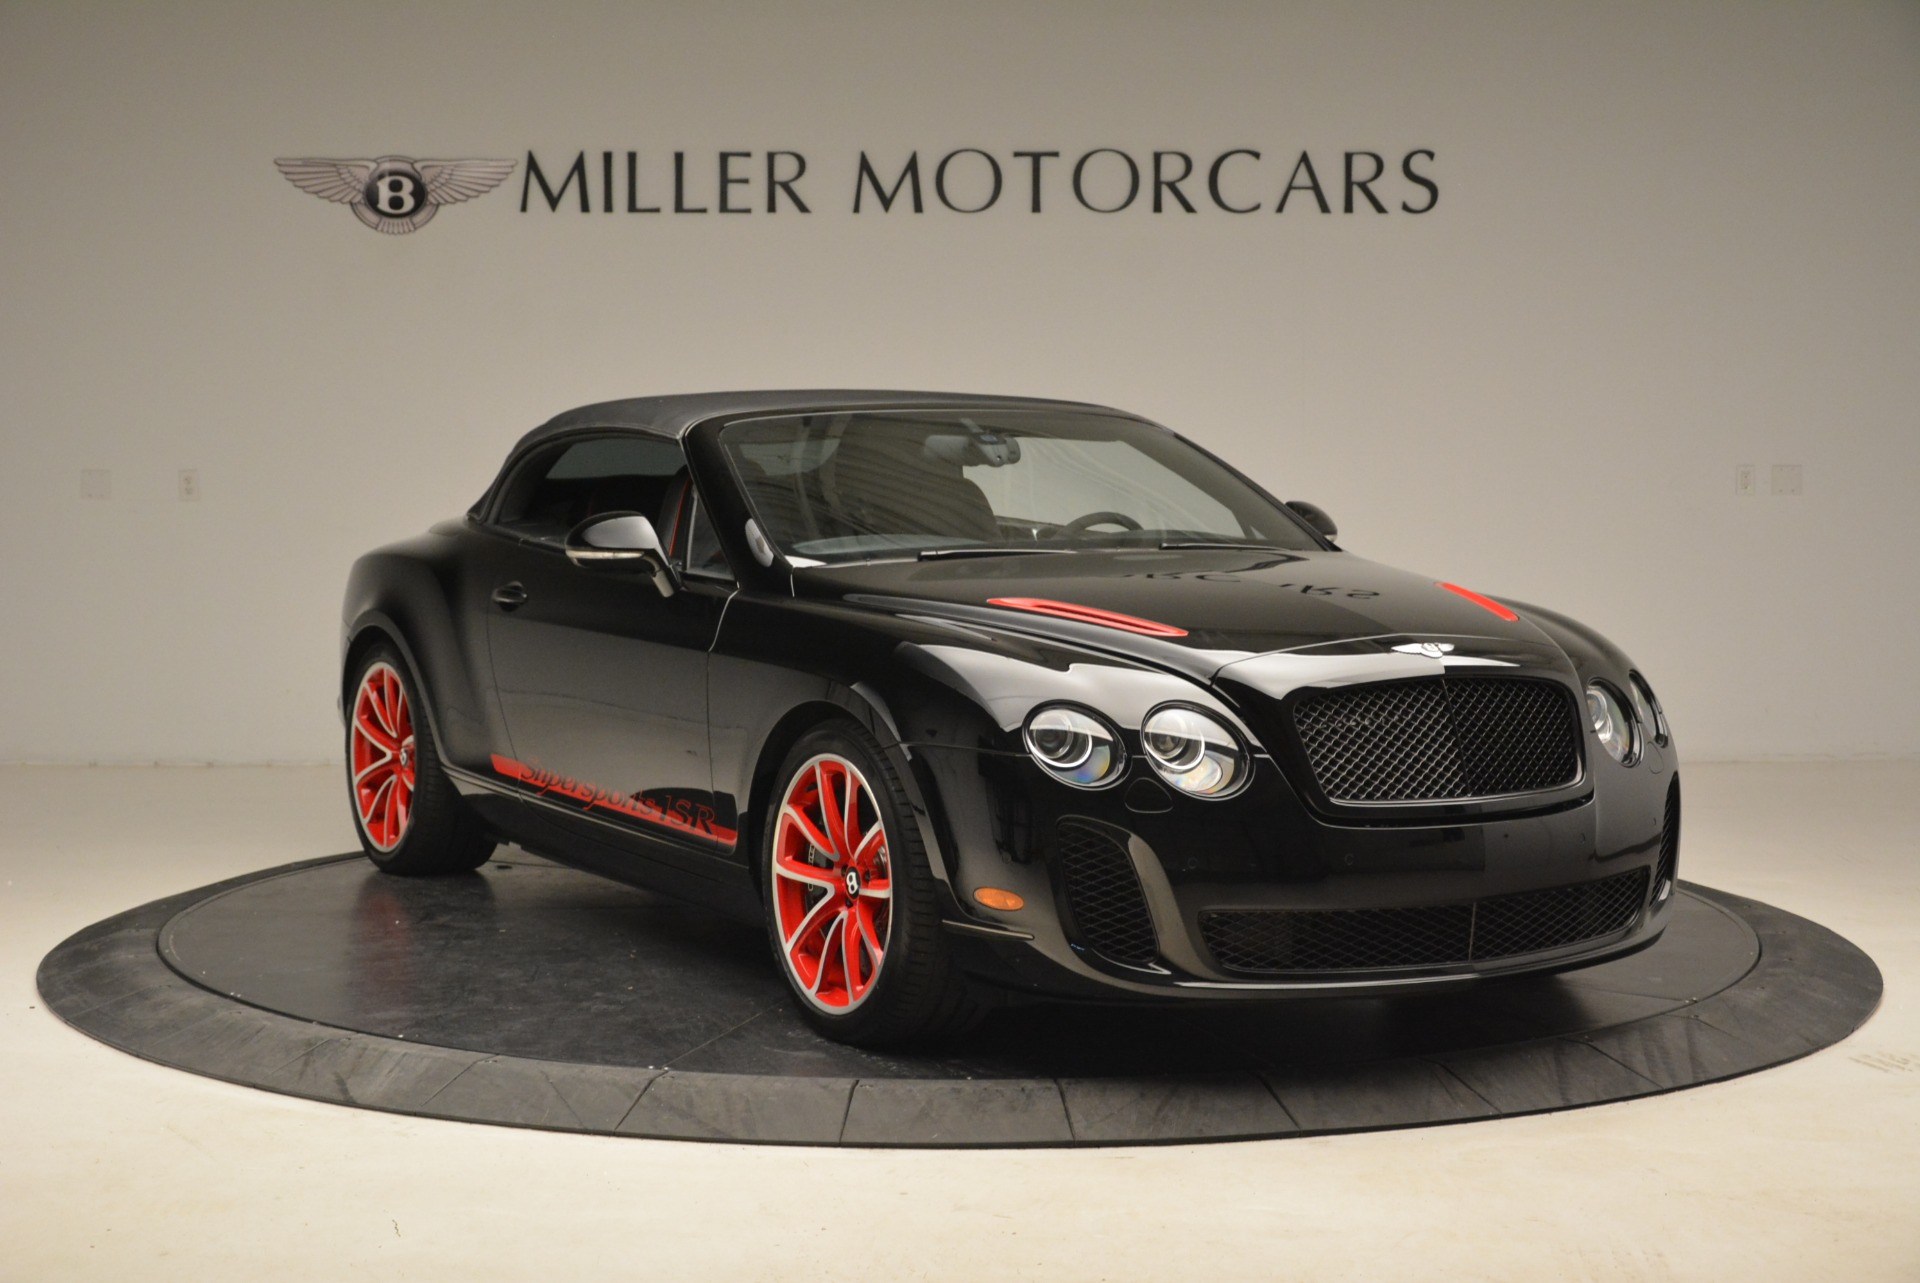 Used 2013 Bentley Continental GT Supersports Convertible ISR For Sale In Greenwich, CT. Alfa Romeo of Greenwich, 7340 2151_p24